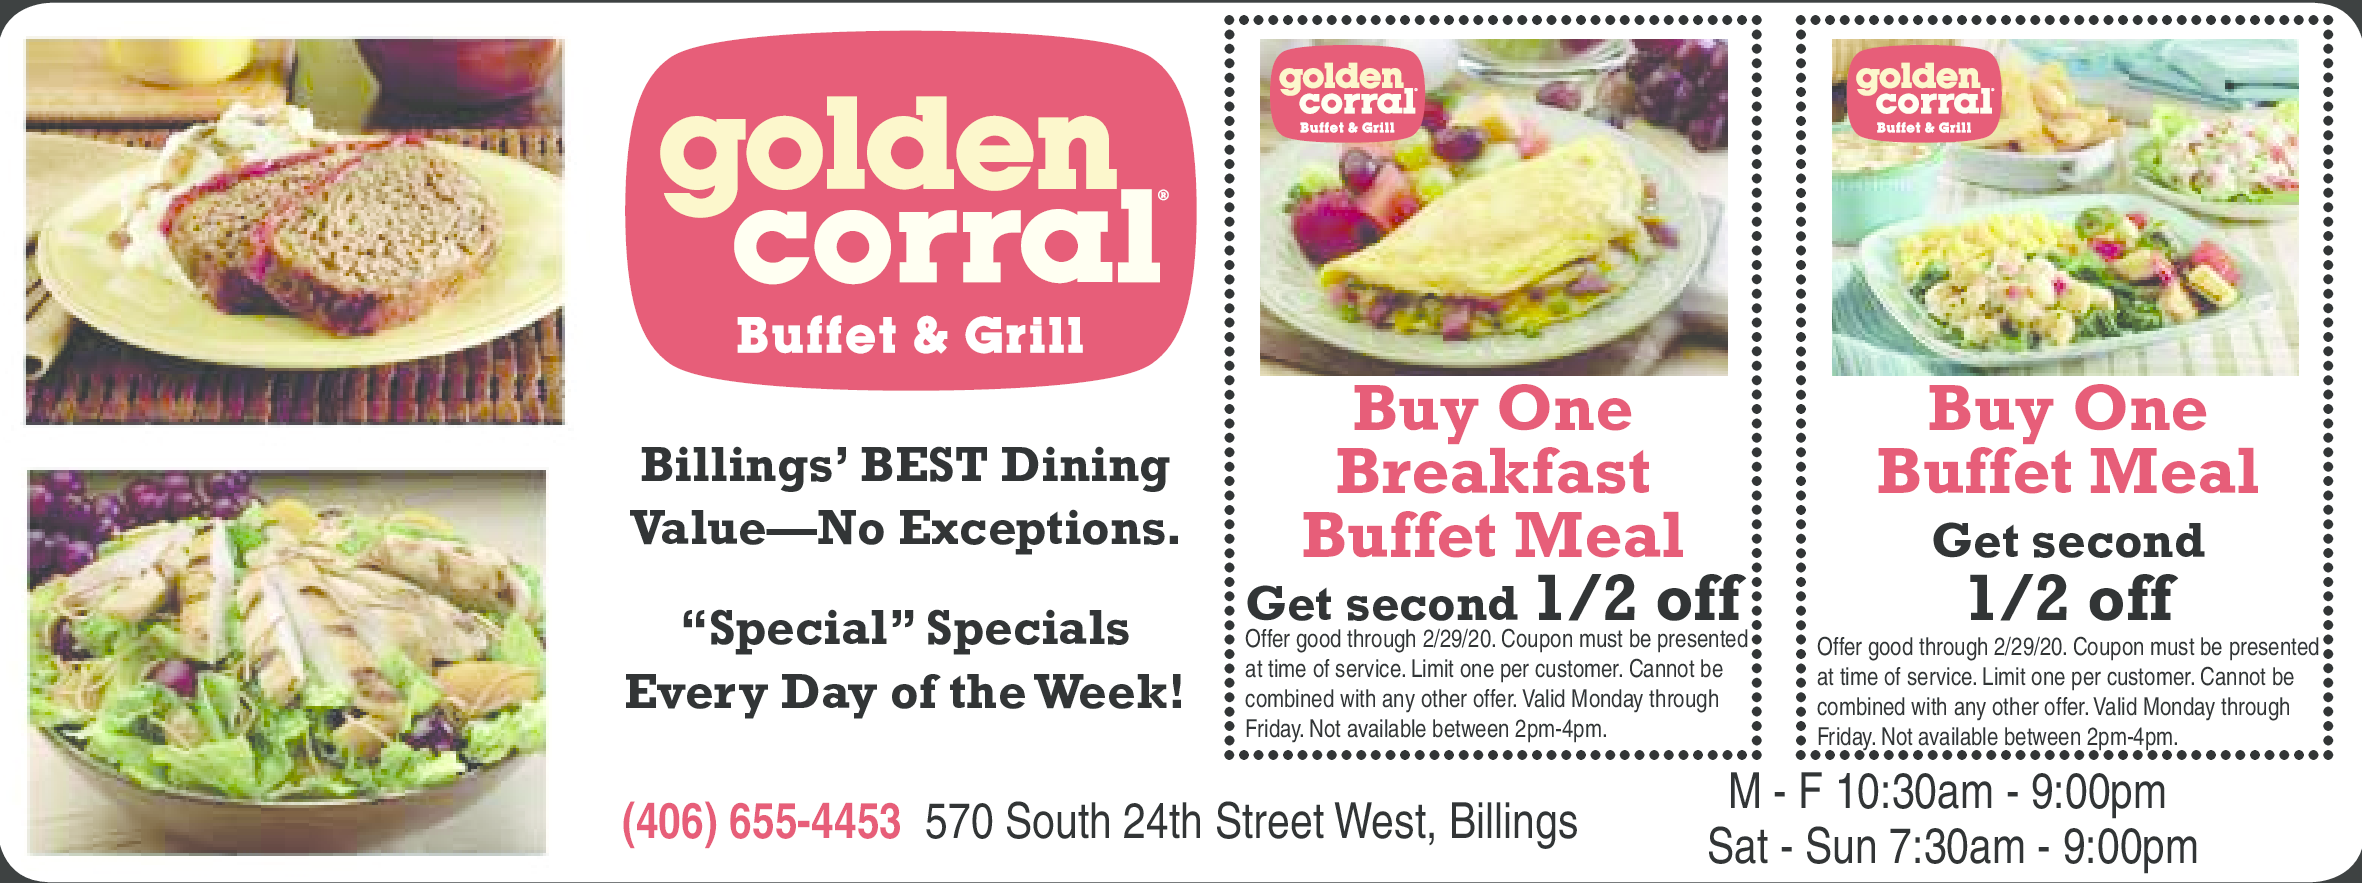 It is a graphic of Obsessed Golden Corral Printable Coupons 2020